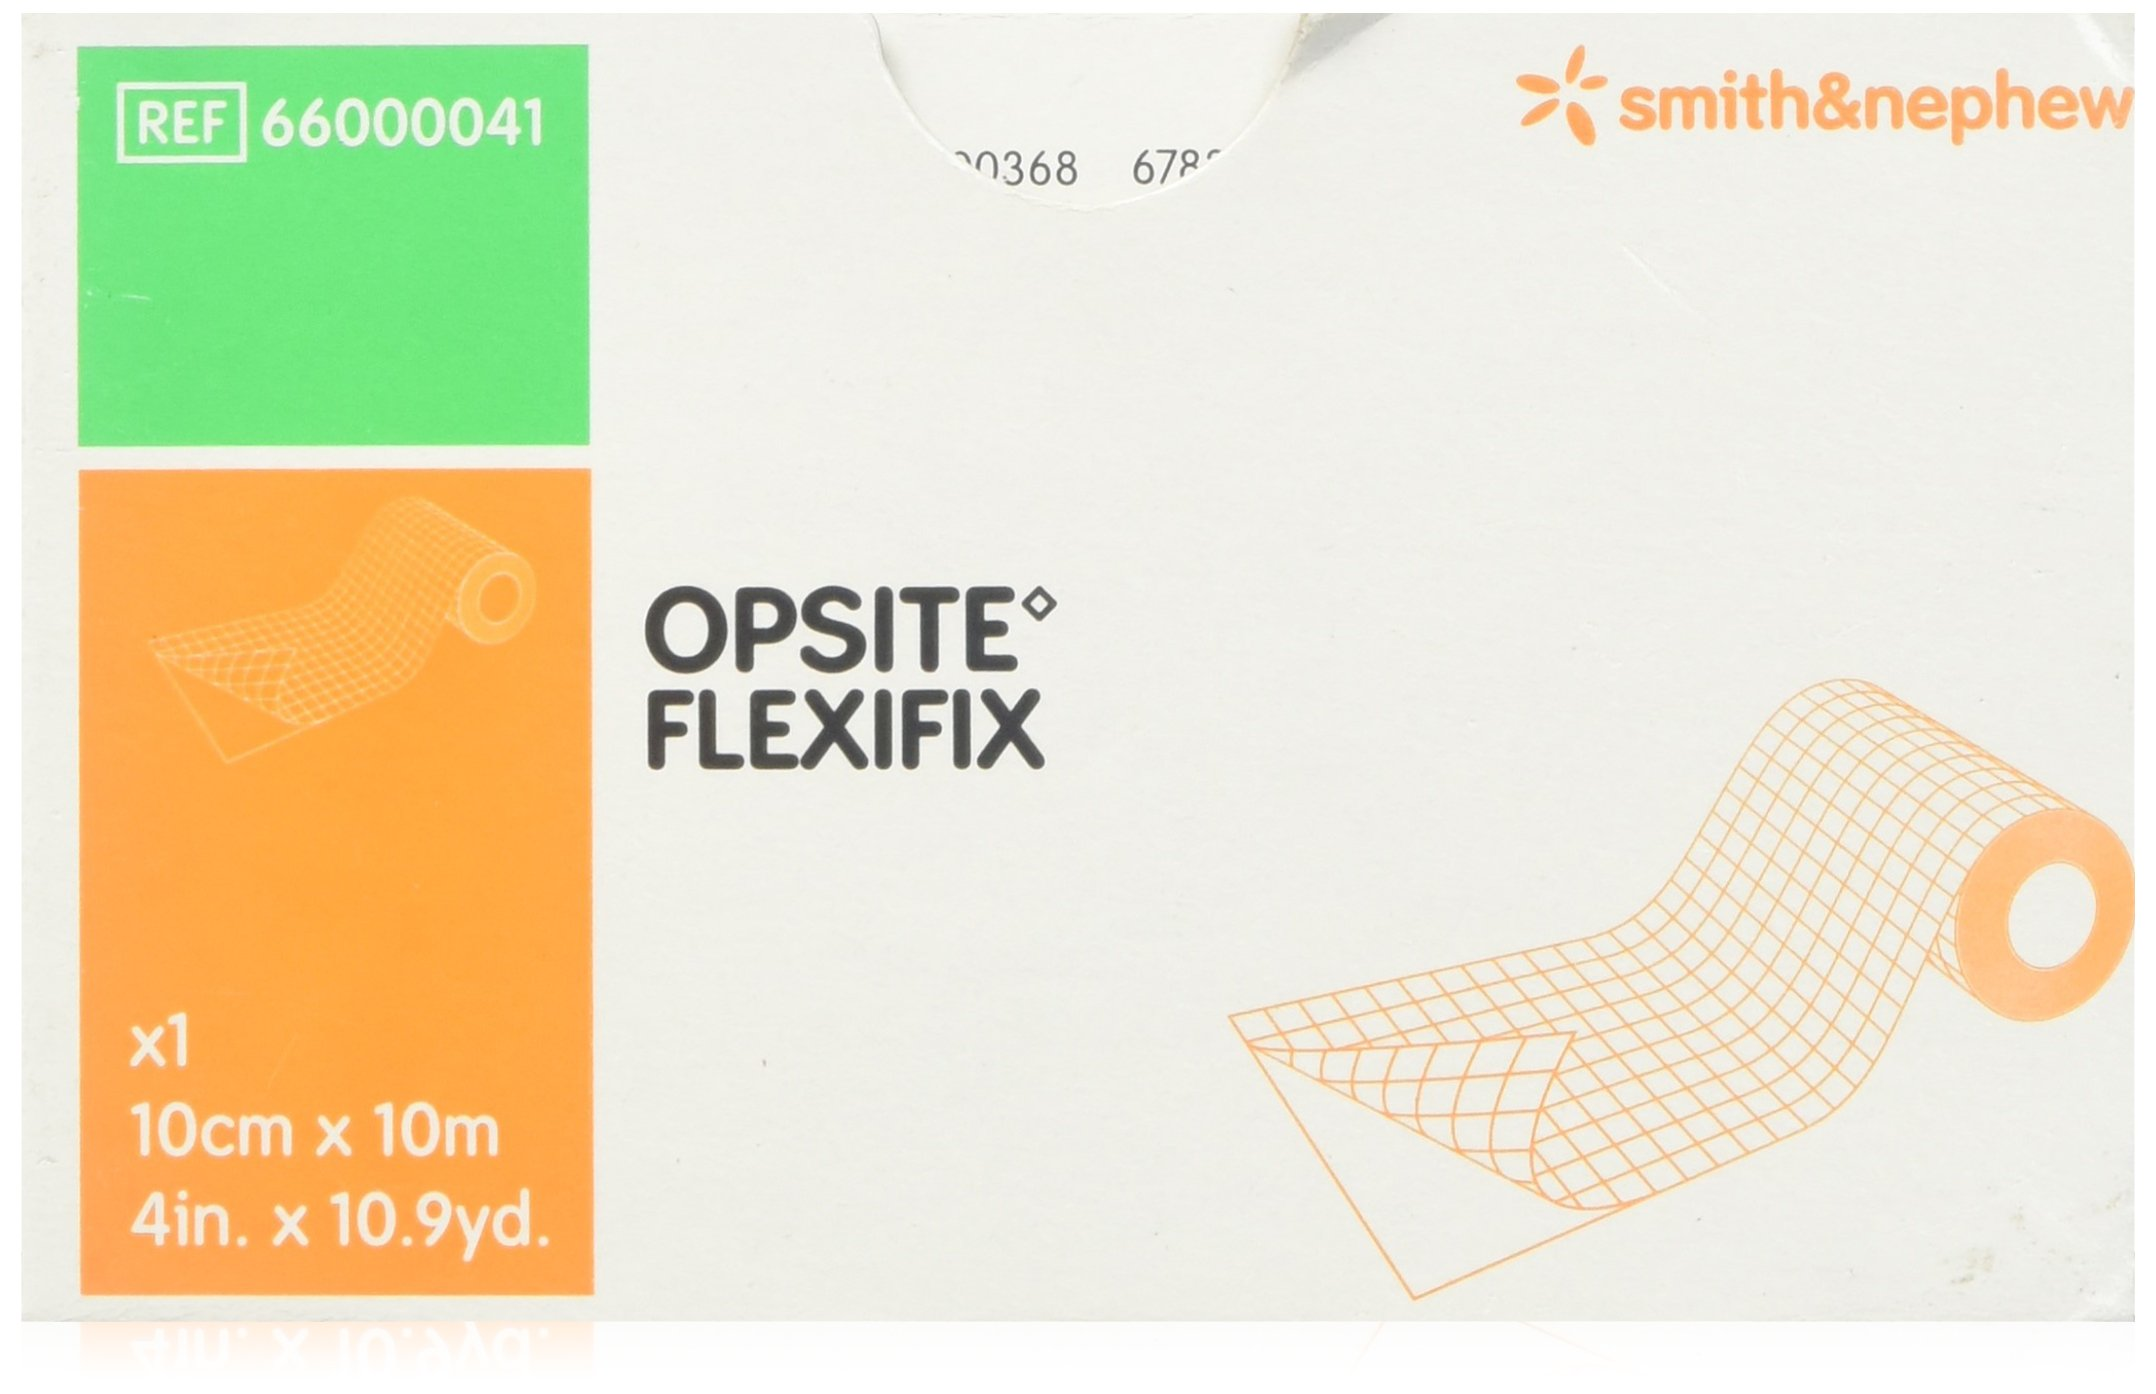 Smith & Nephew 5466000041EA - Opsite Flexifix Transparent Adhesive Film Dressing 4 x 11 ...